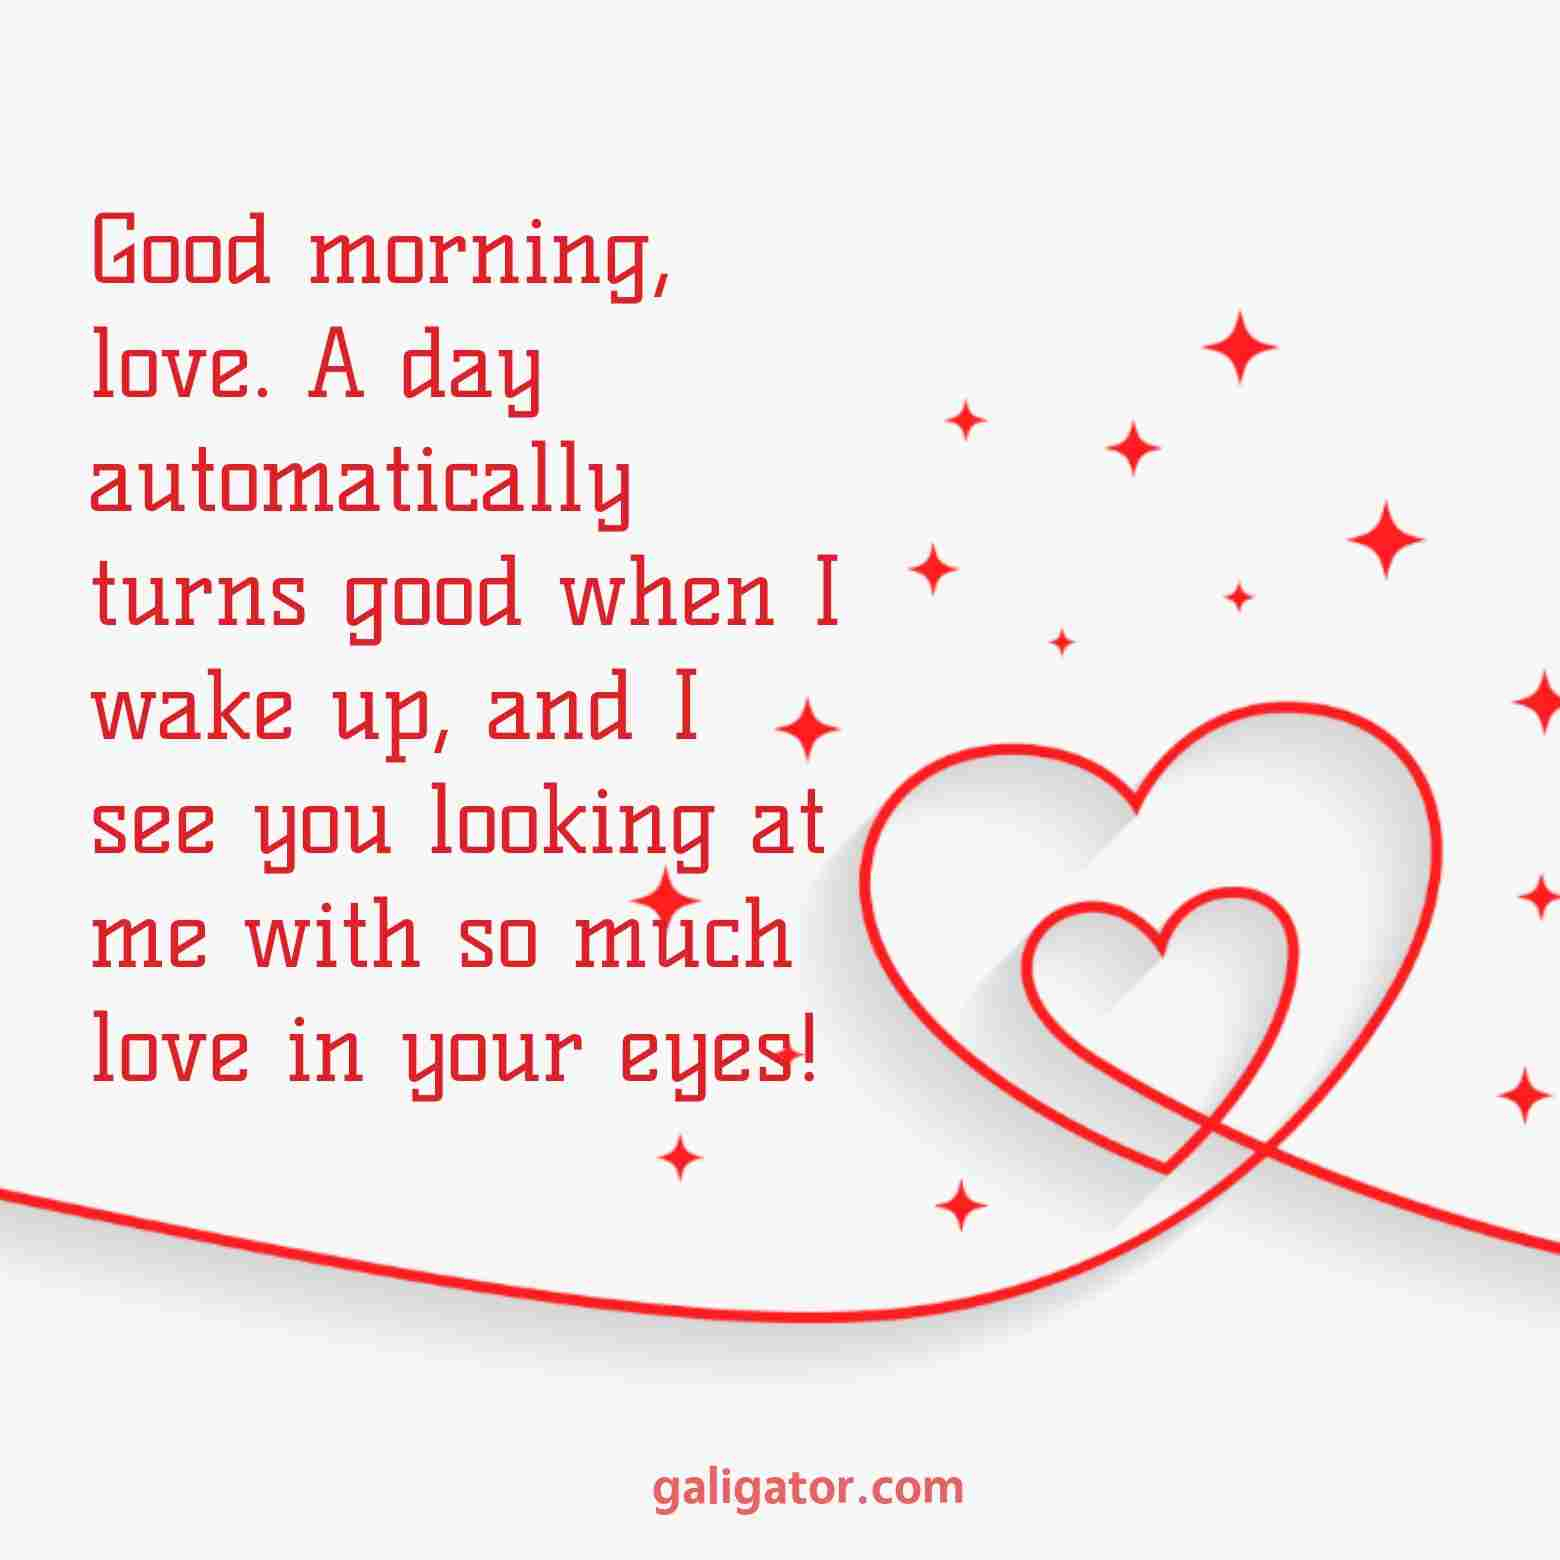 heart touching good morning love quotes, good morning my love quotes , love romantic good morning quotes, good morning love quotes , good morning images with love quotes , good morning love quotes for him, love husband good morning quotes, good morning love quotes for her, love inspirational good morning quotes , love romantic love good morning quotes